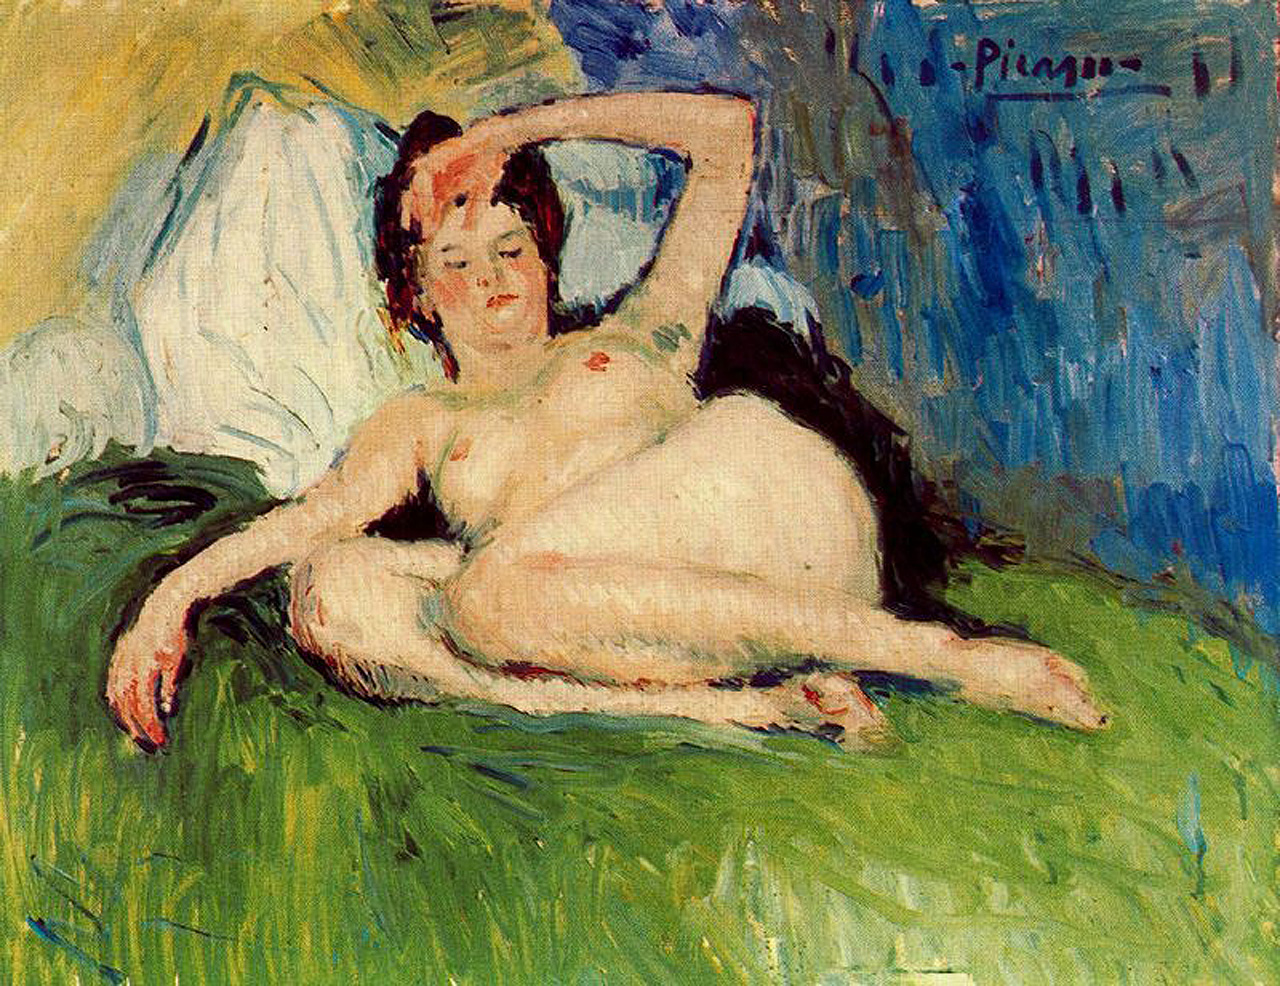 http://uploads1.wikipaintings.org/images/pablo-picasso/jeanne-reclining-nude-1901.jpg